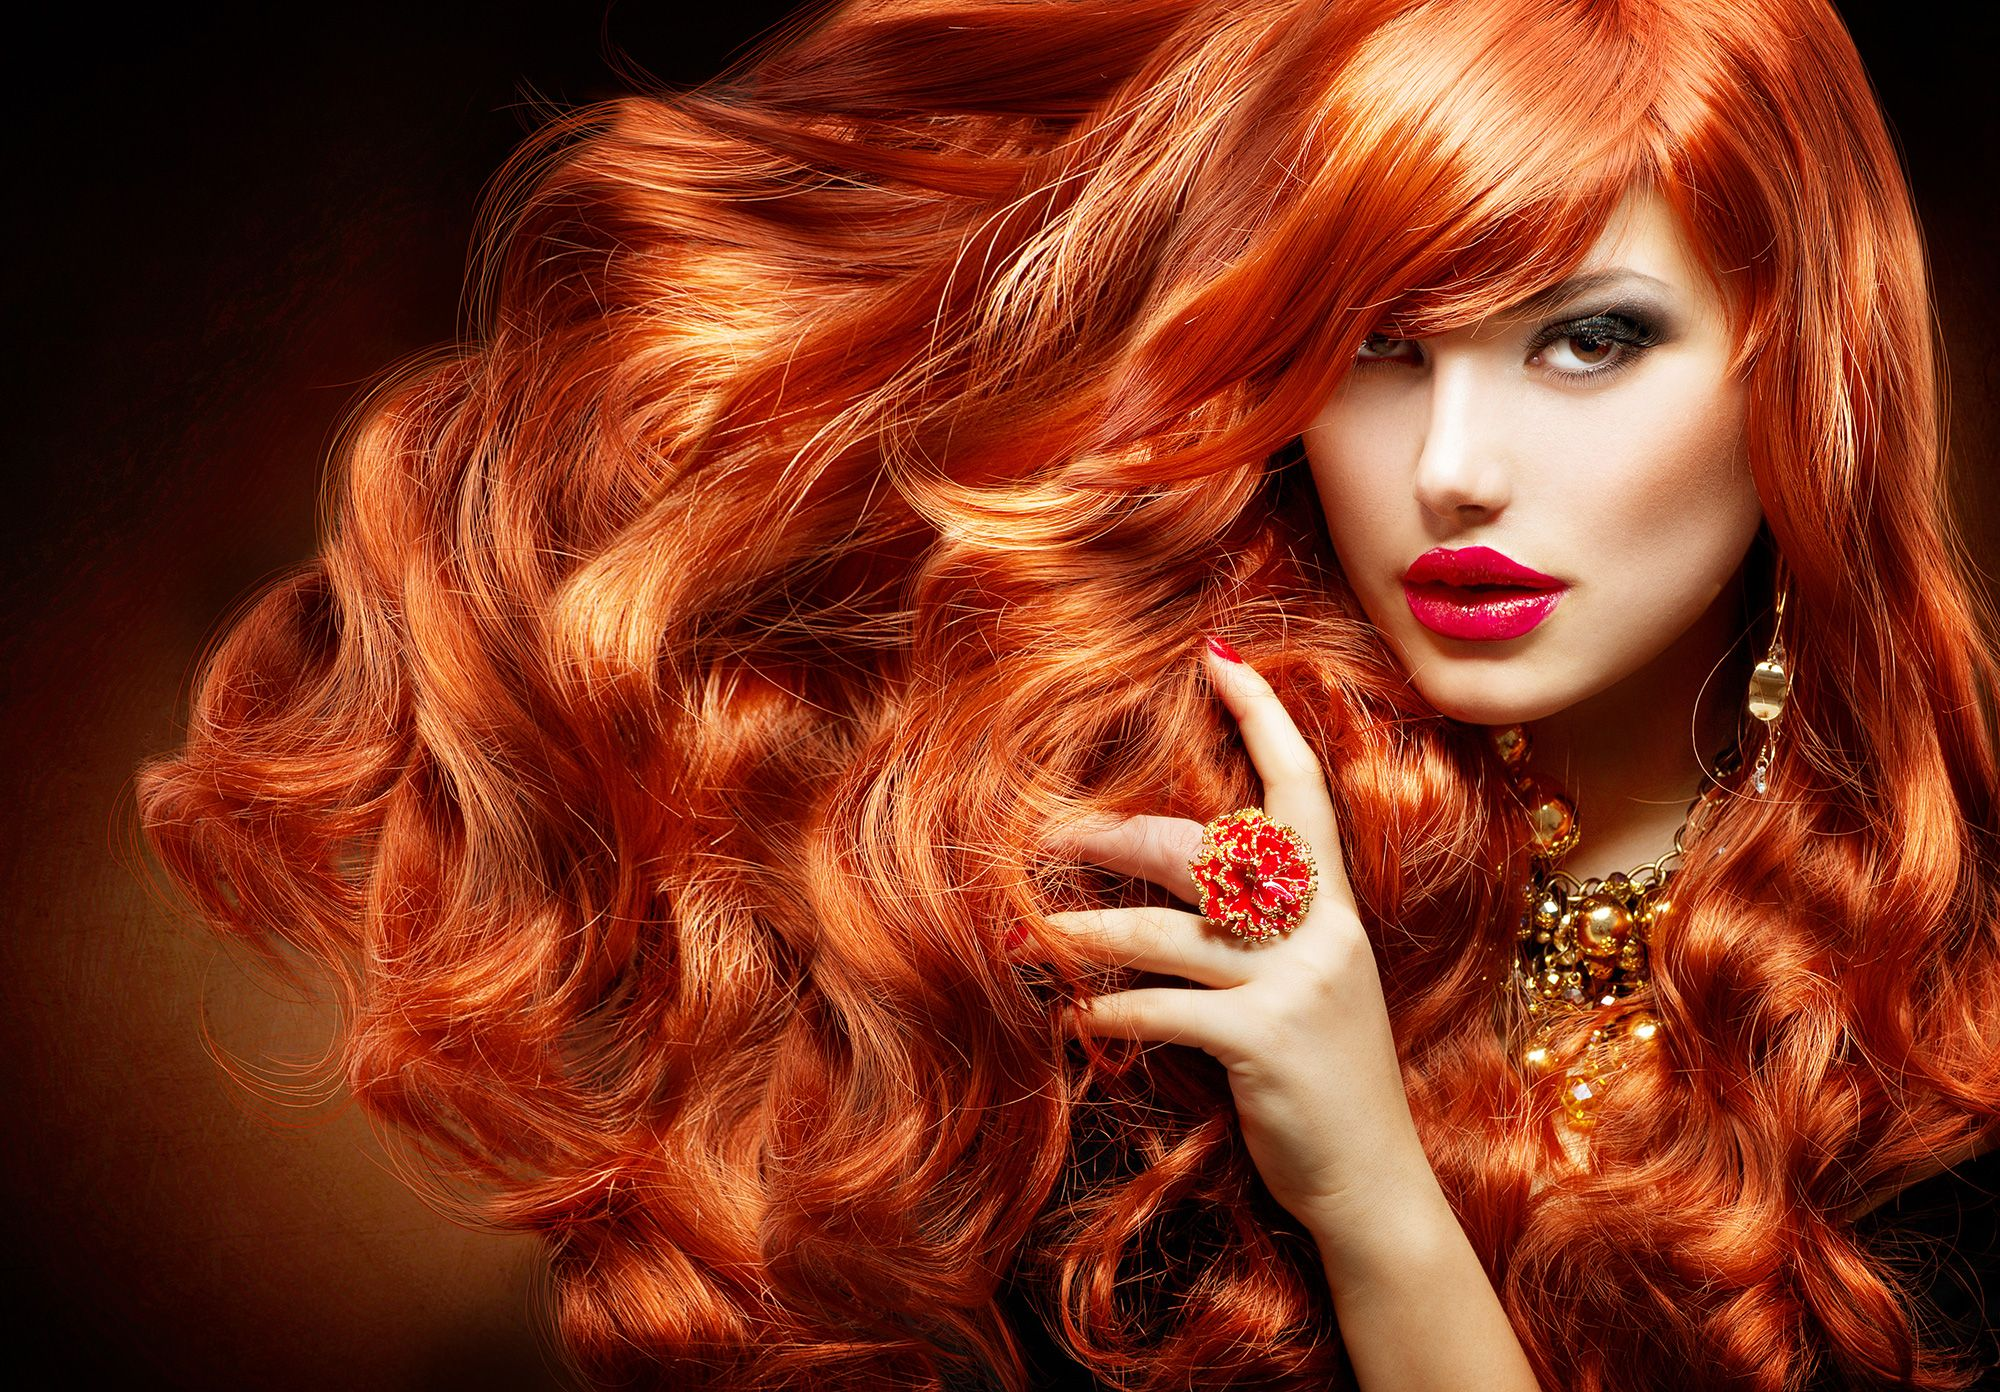 Fotolia 57663589 Subscription Monthly Xxl Jpg 2000 1392 Cheveux Boucles Rouges Couleur Cheveux Rouge Couleur Cheveux